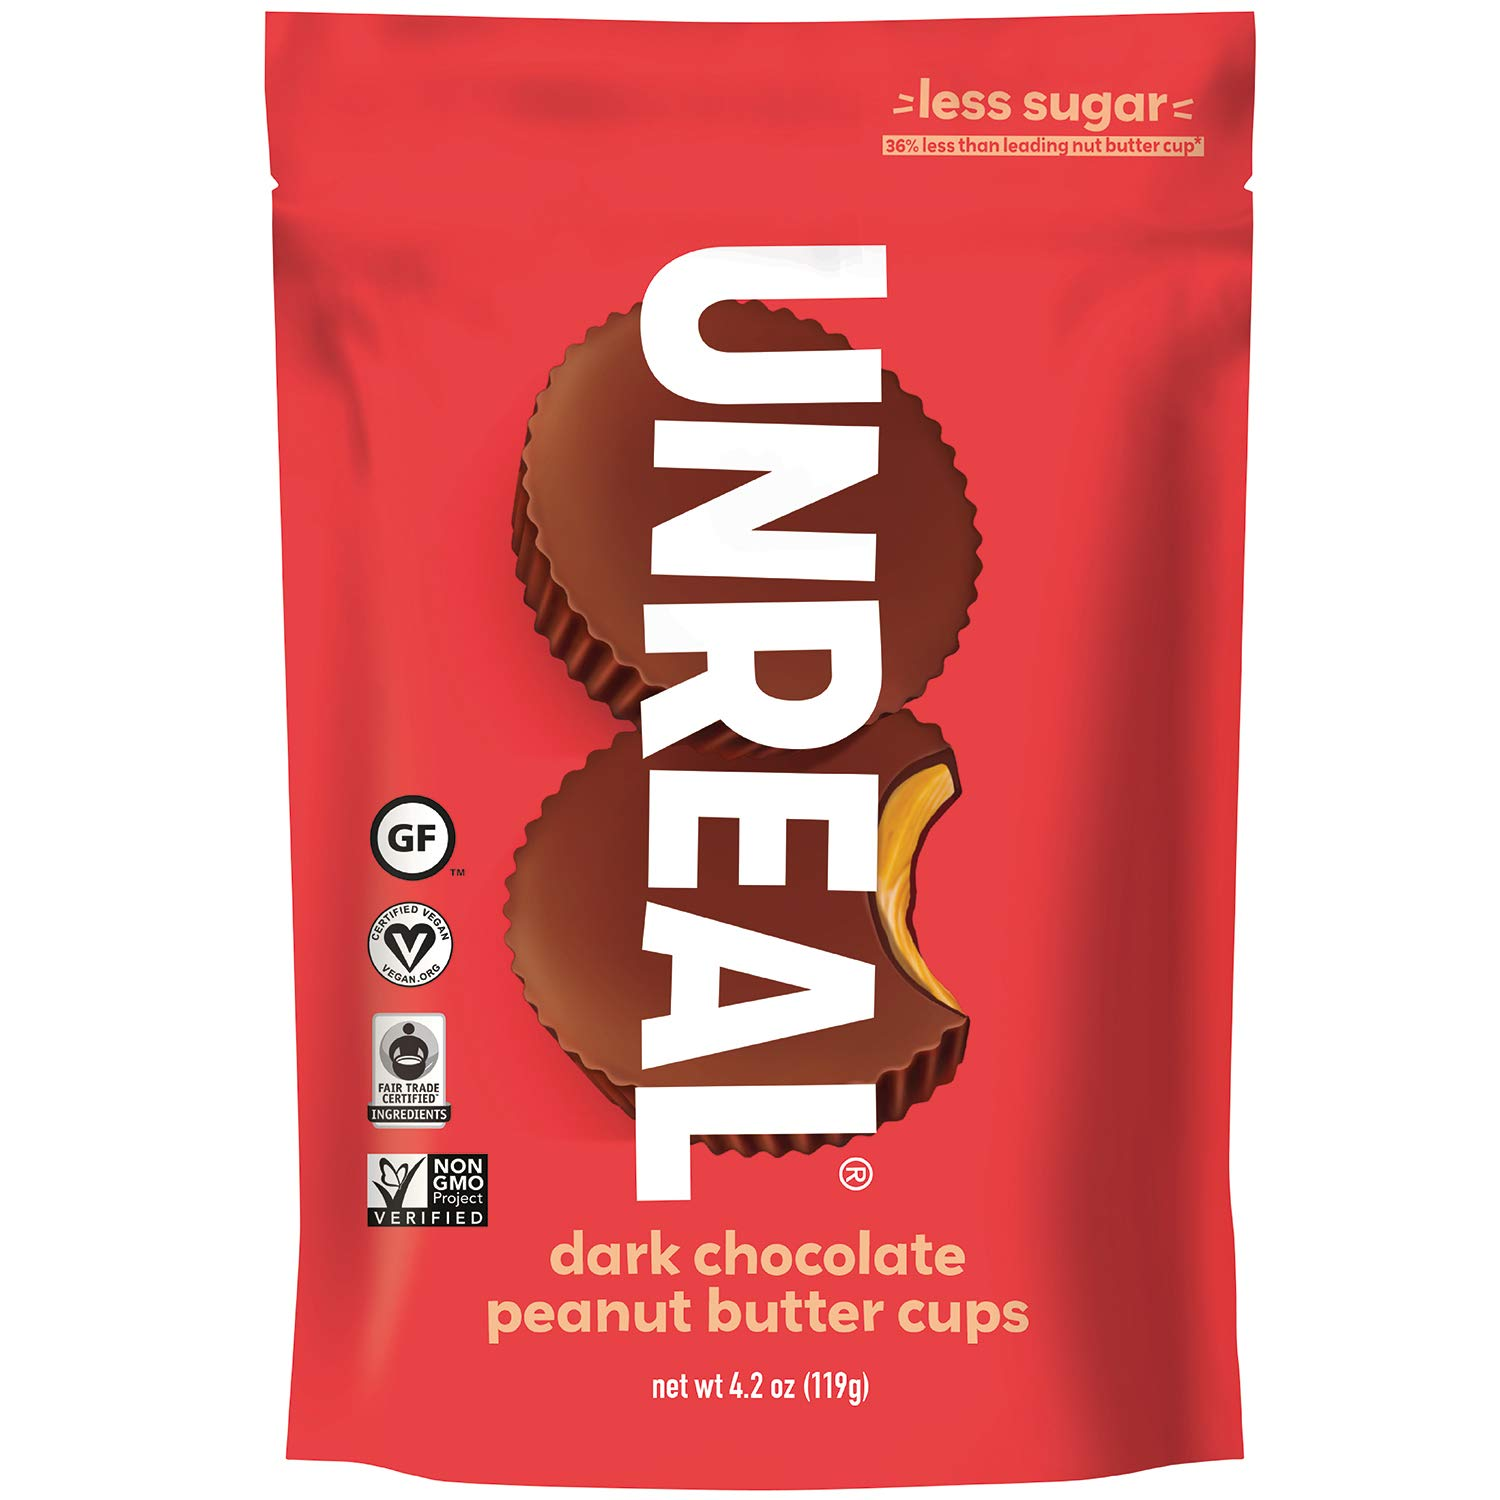 UNREAL Dark Chocolate Peanut Butter Cups | Vegan, Gluten Free, Less Sugar | 3 Bags by UNREAL